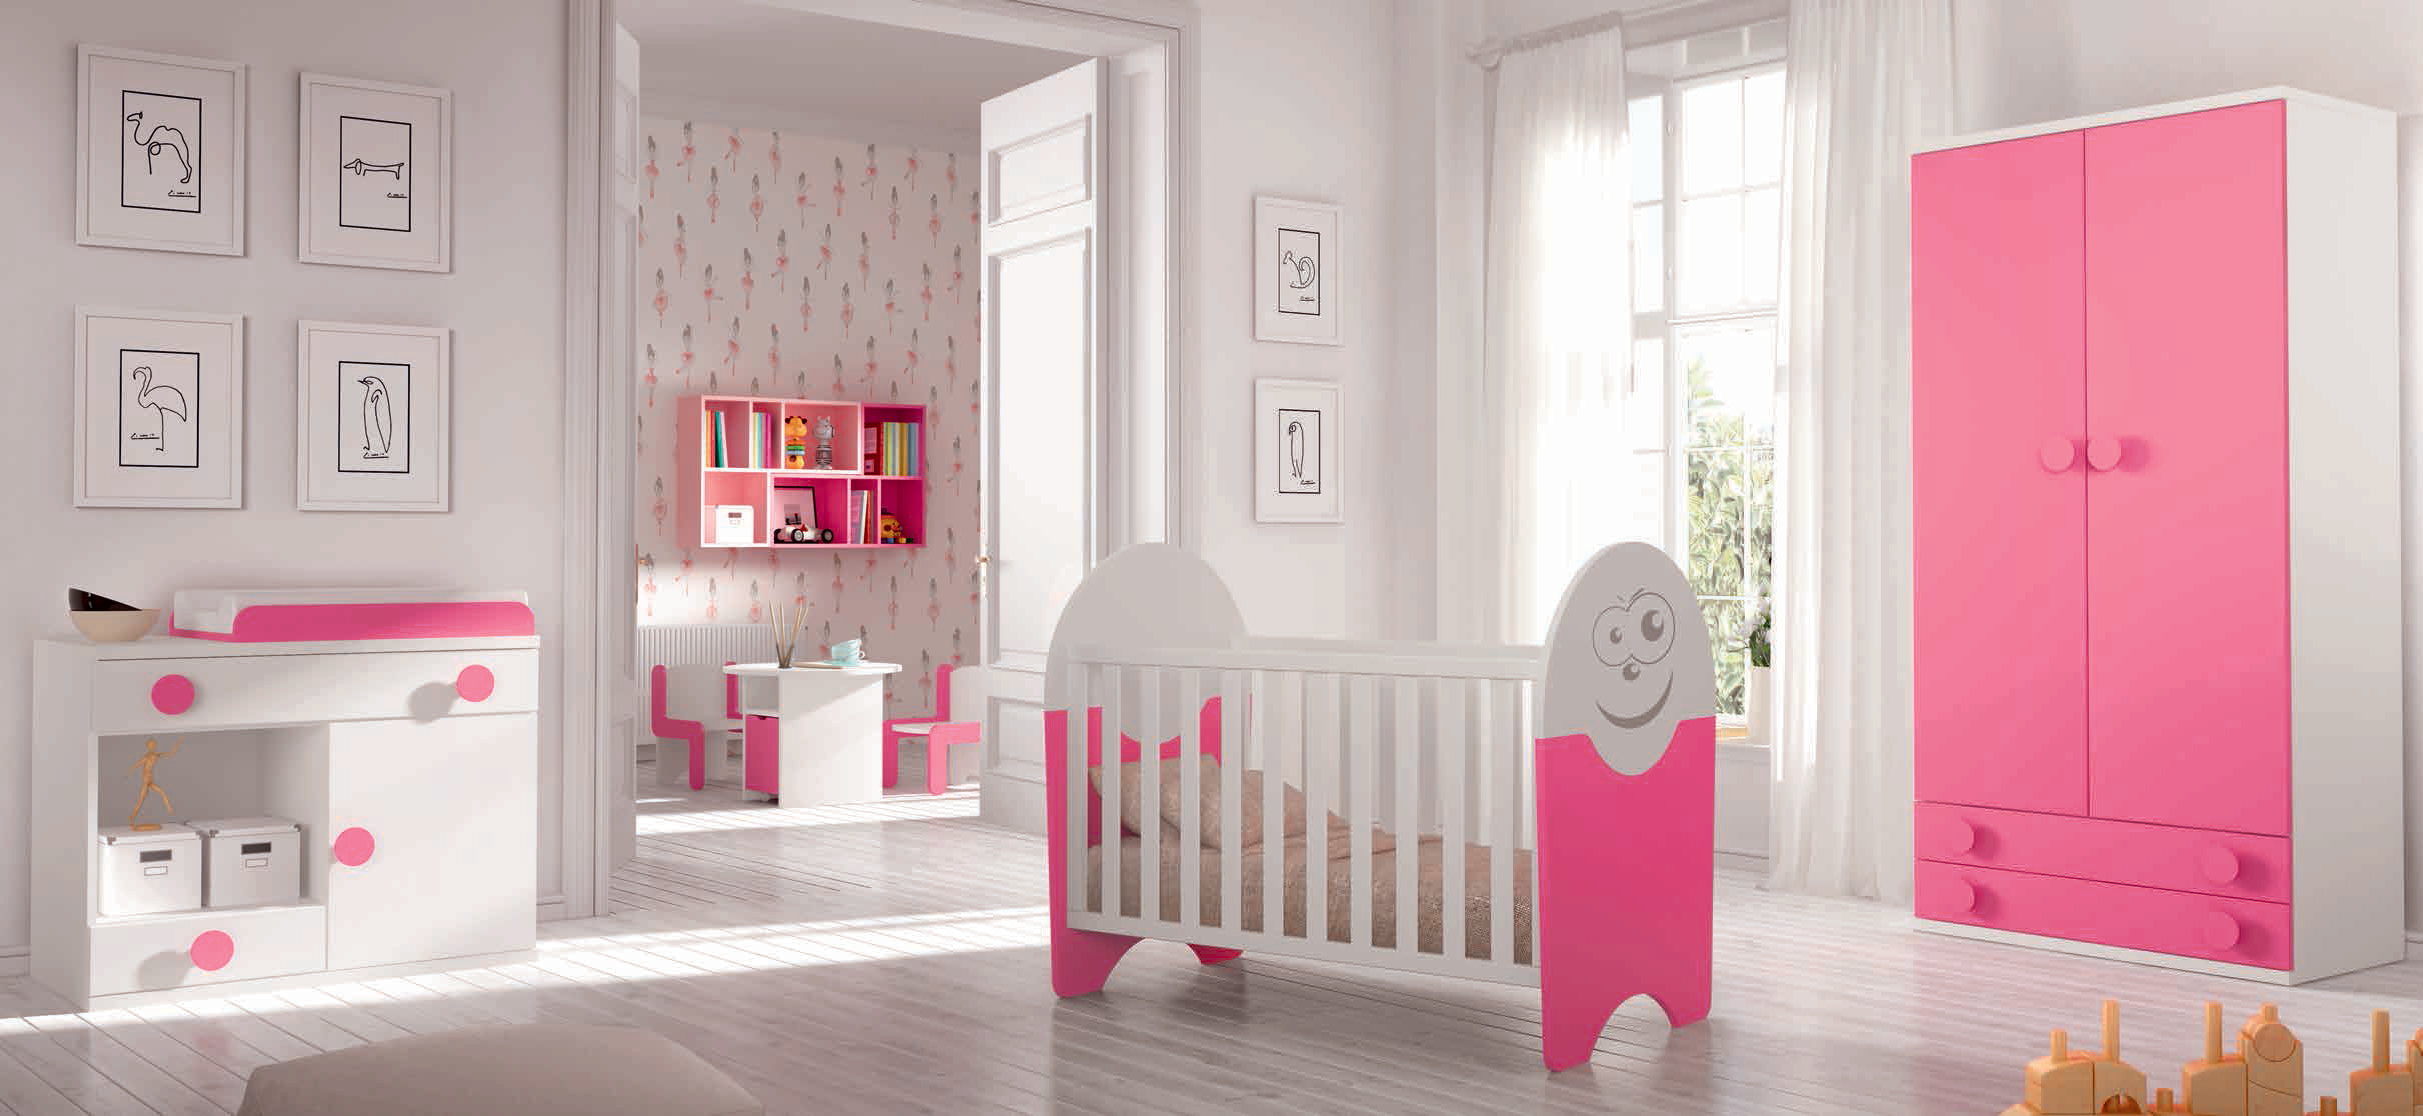 comment pr parer votre enfant partager sa chambre de fille. Black Bedroom Furniture Sets. Home Design Ideas